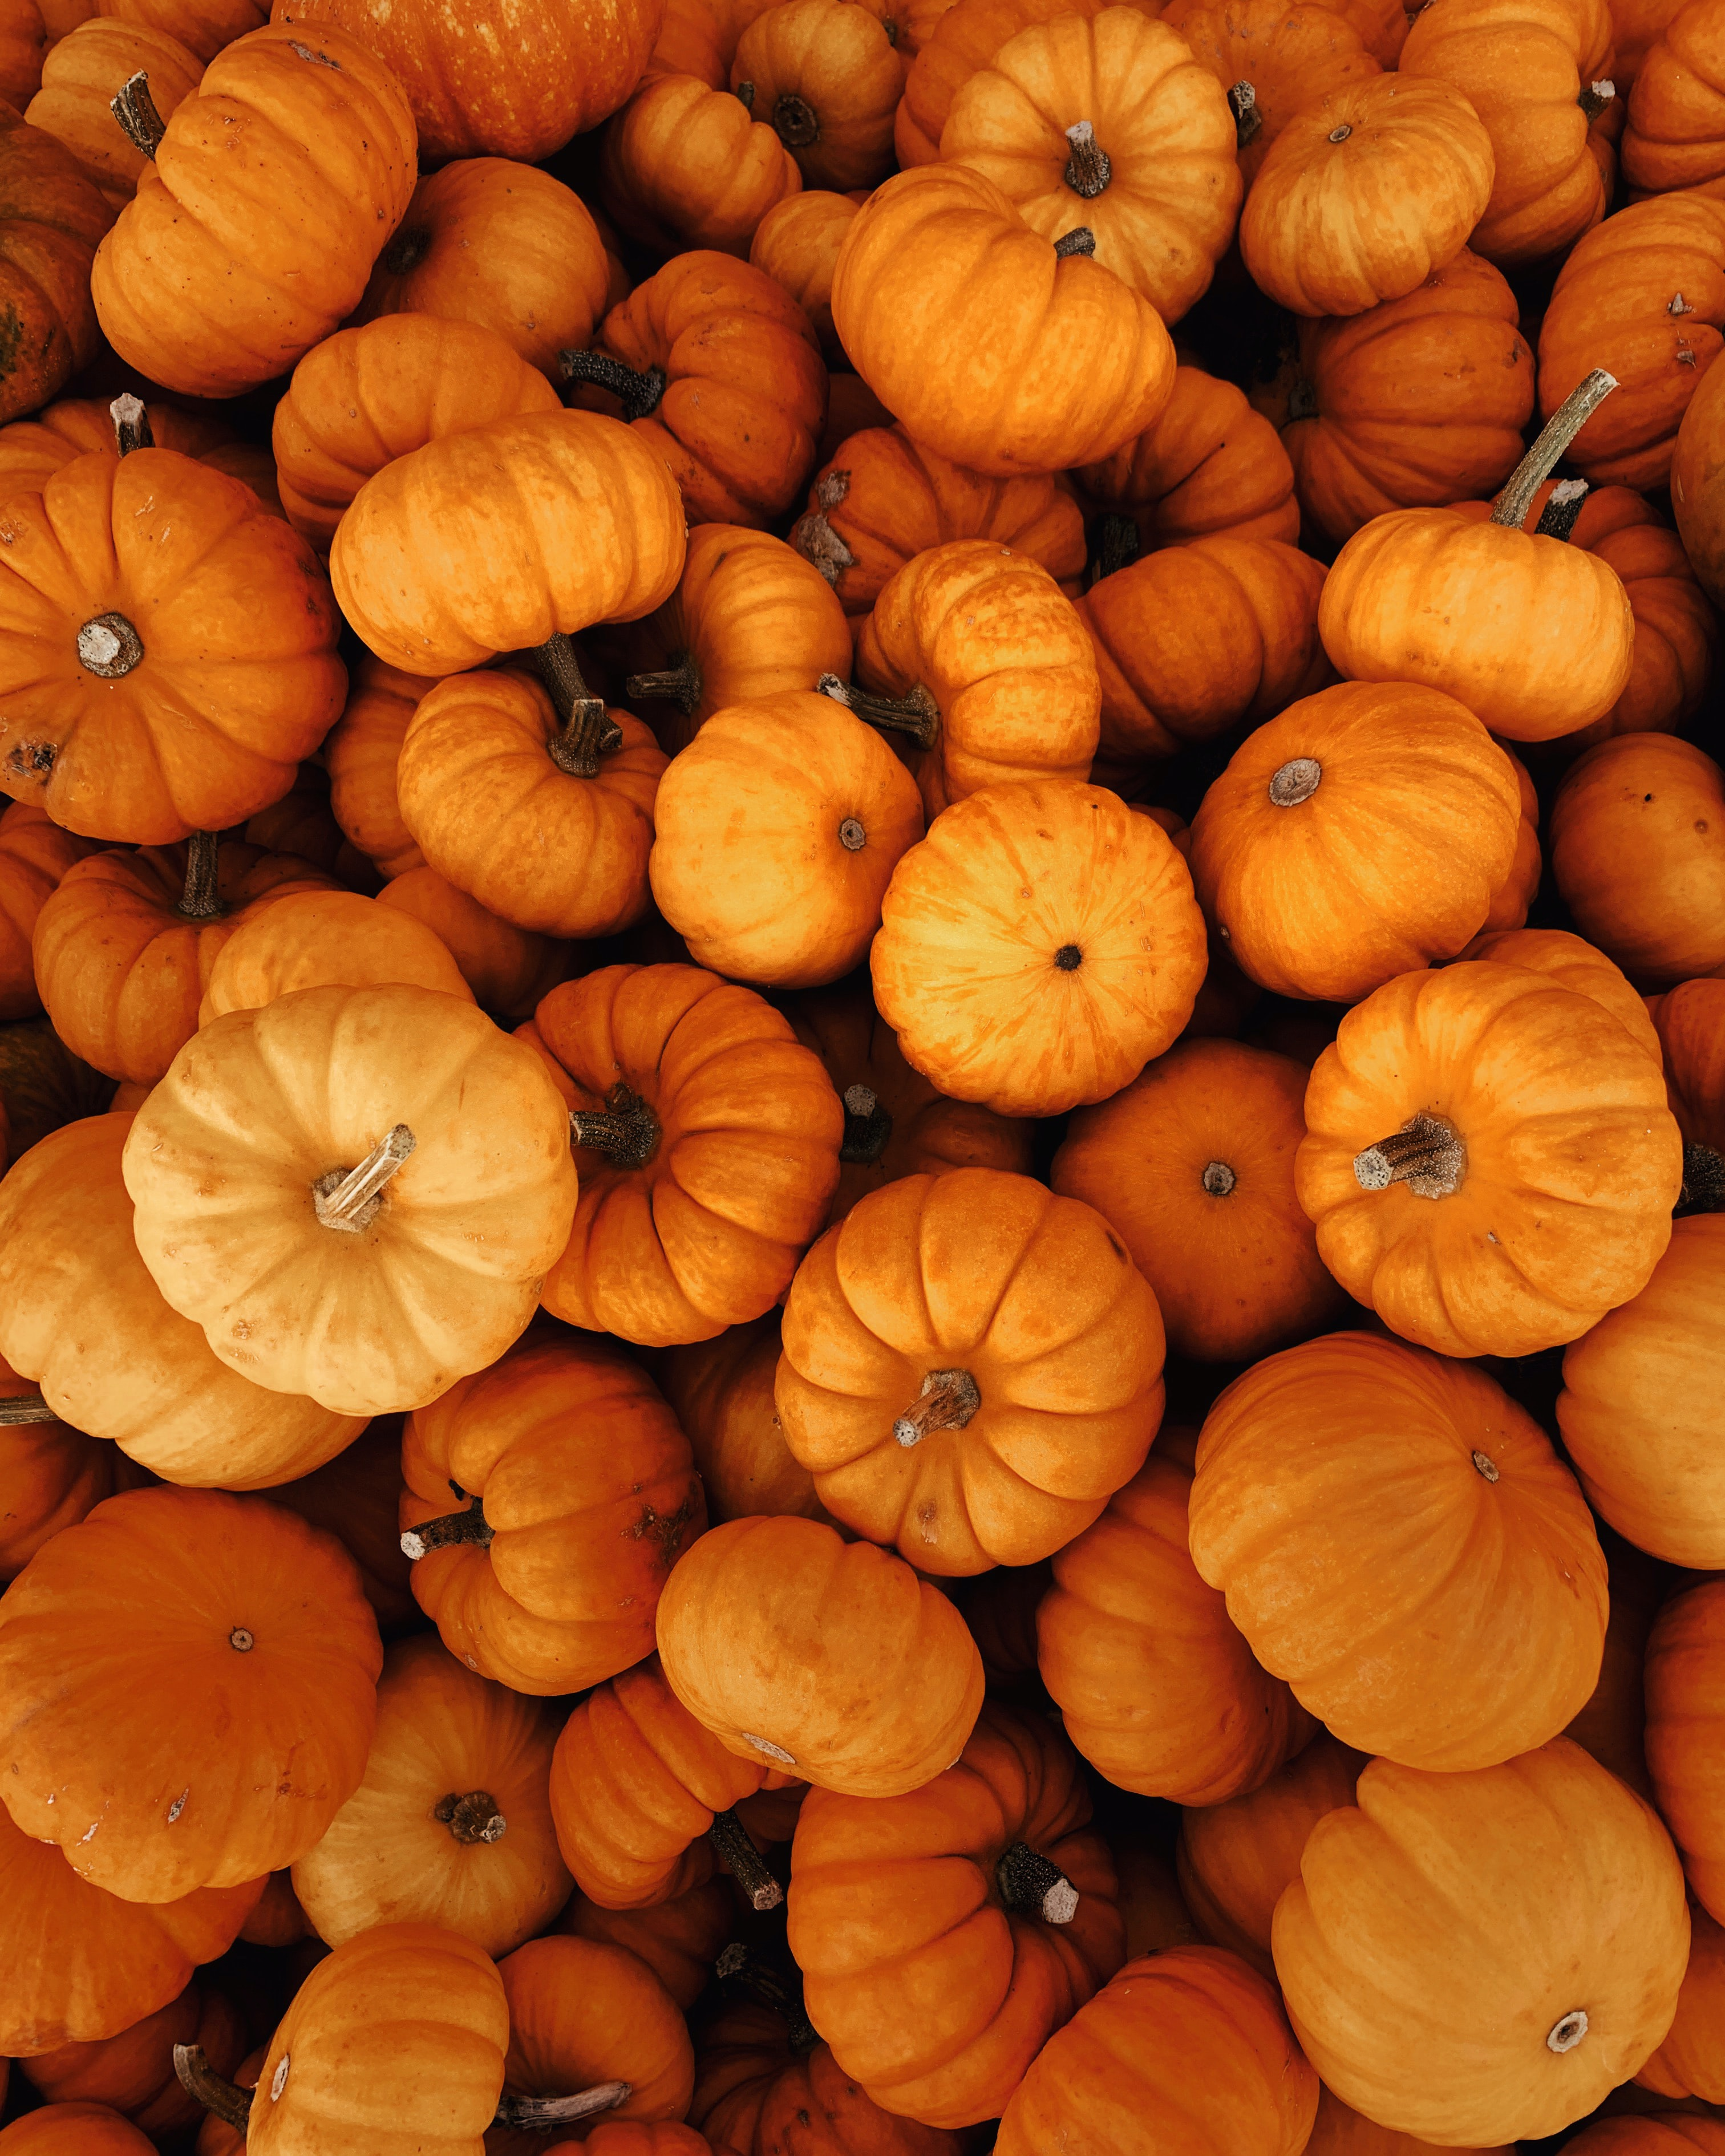 120021 download wallpaper Miscellanea, Miscellaneous, Autumn, Halloween, Harvest, Vegetables, Pumpkin screensavers and pictures for free